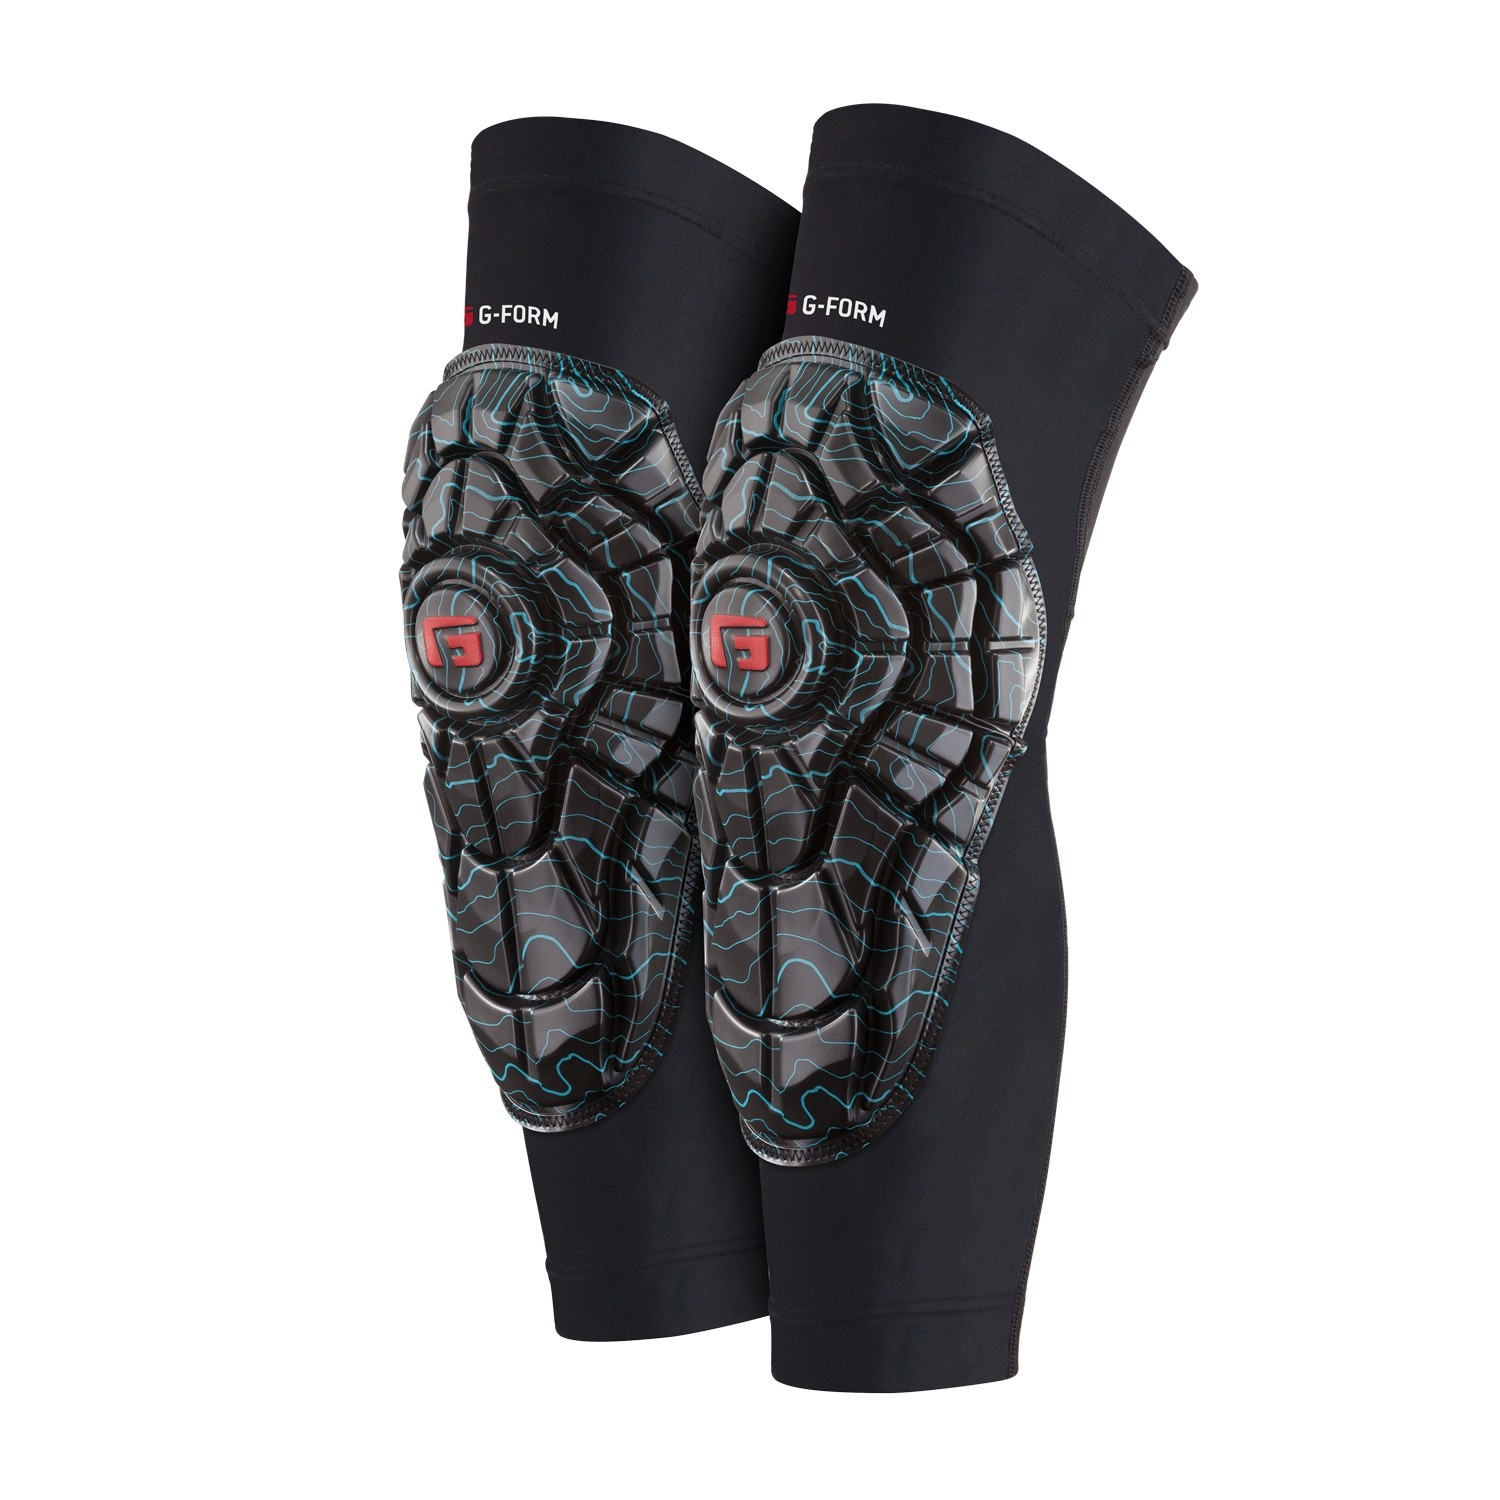 G-FORM ELITE KNEE GUARD TEAL TOPO / BLACK